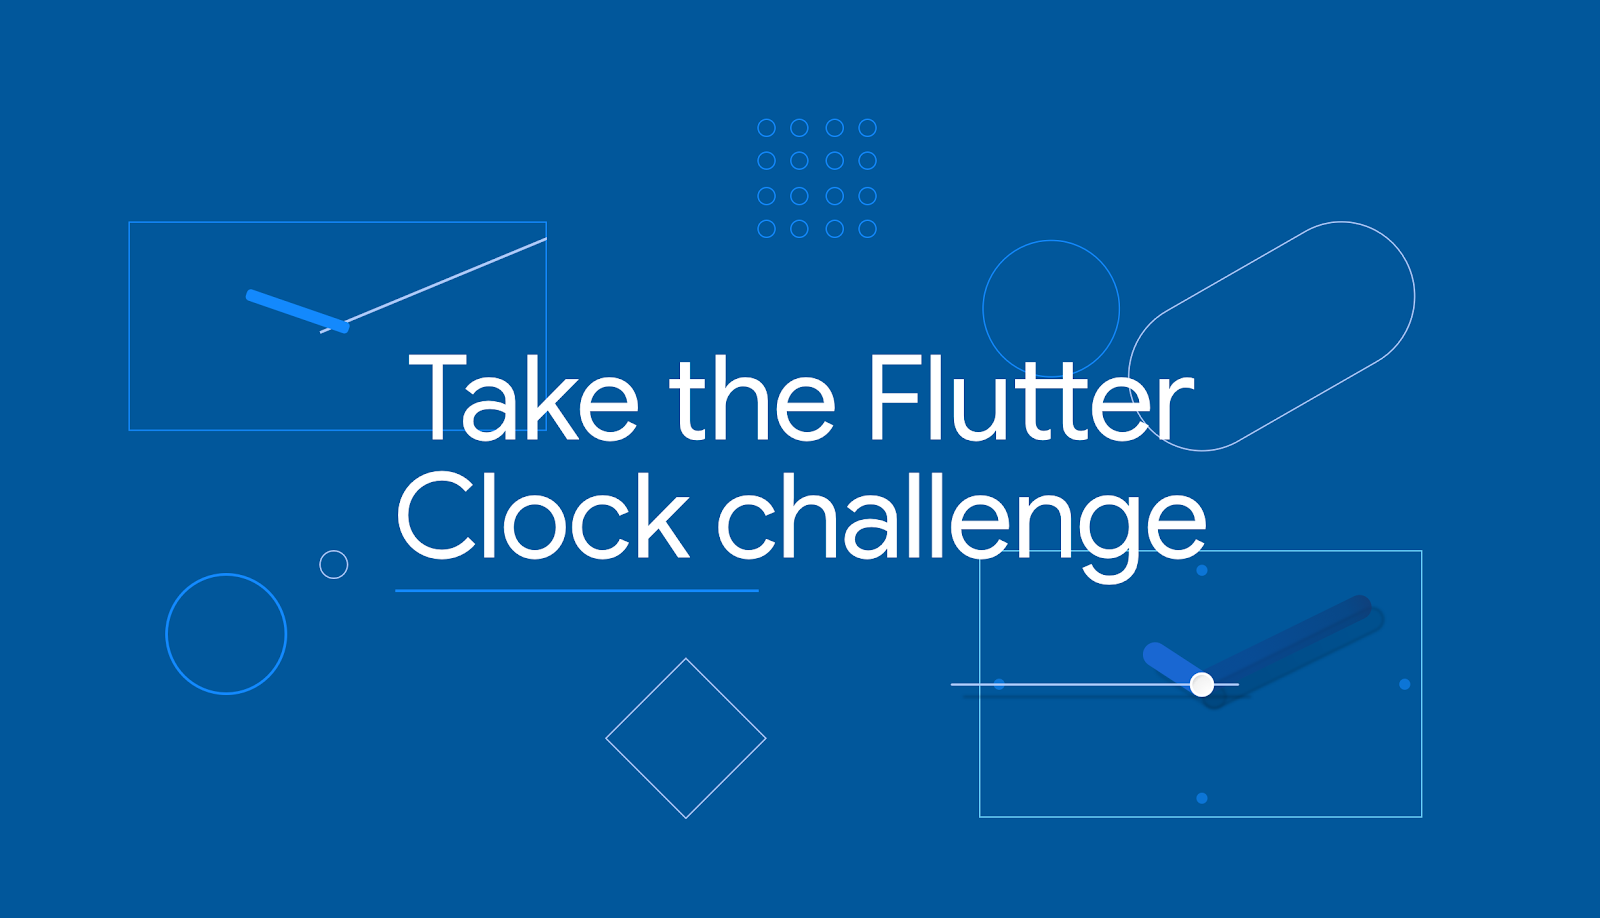 Take the Flutter Clock challenge banner